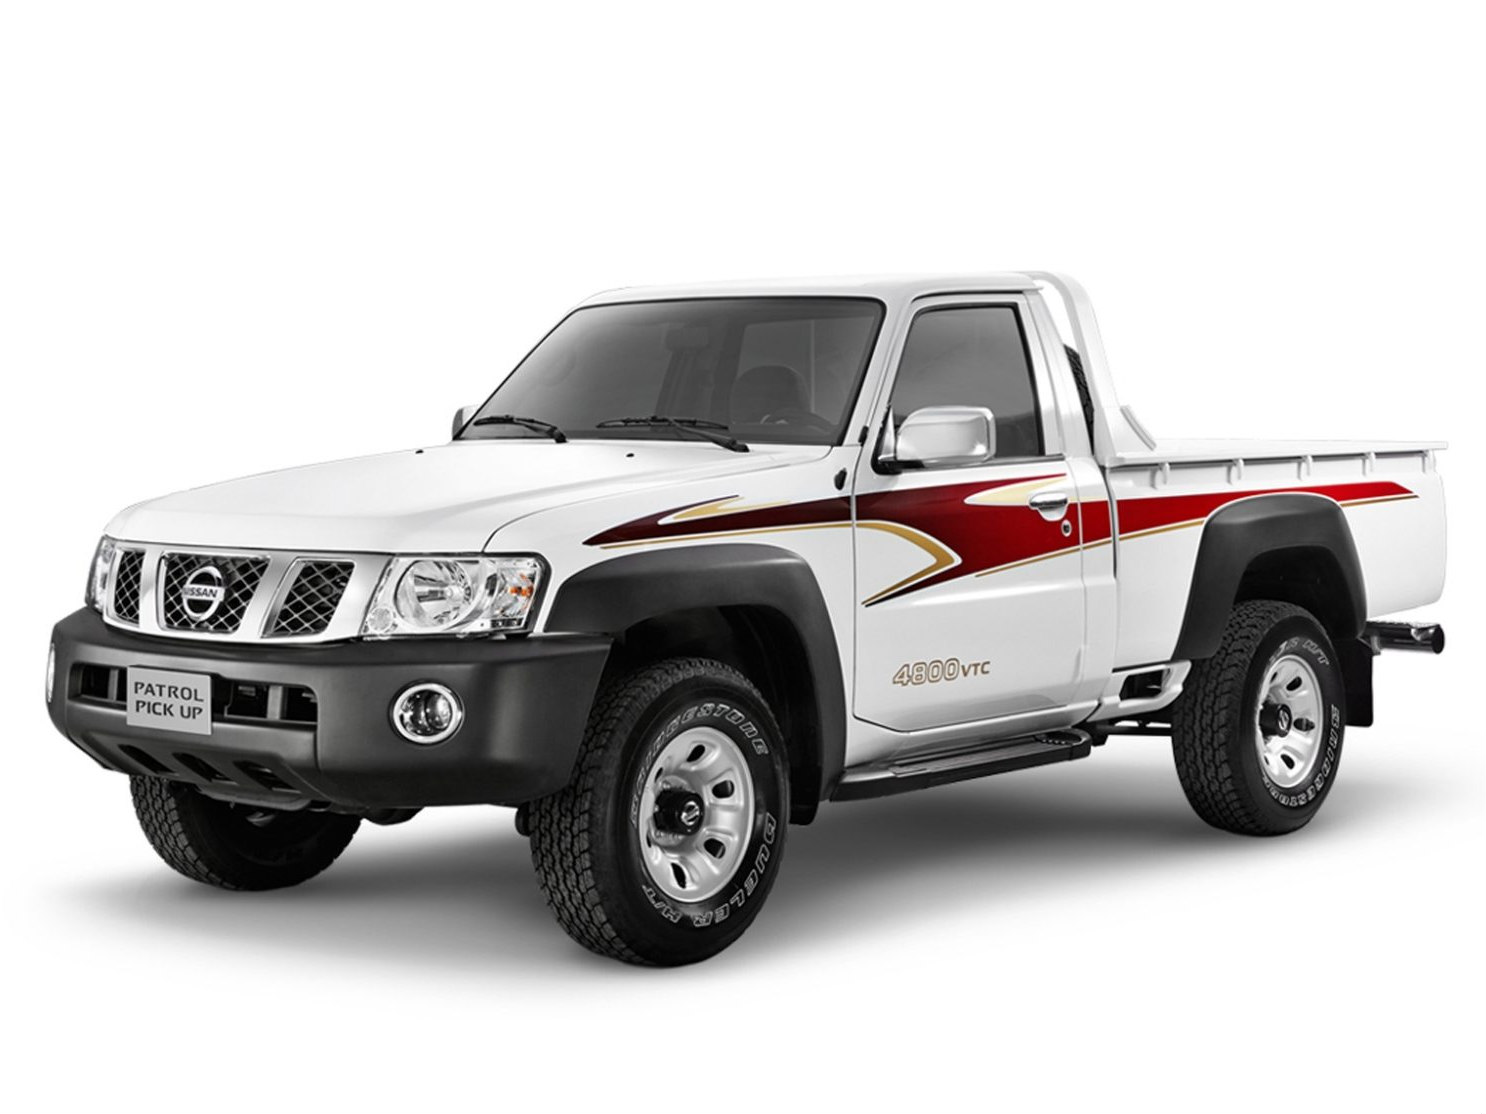 nissan patrol pick up 2018 sgl manual in uae new car prices specs reviews photos yallamotor. Black Bedroom Furniture Sets. Home Design Ideas